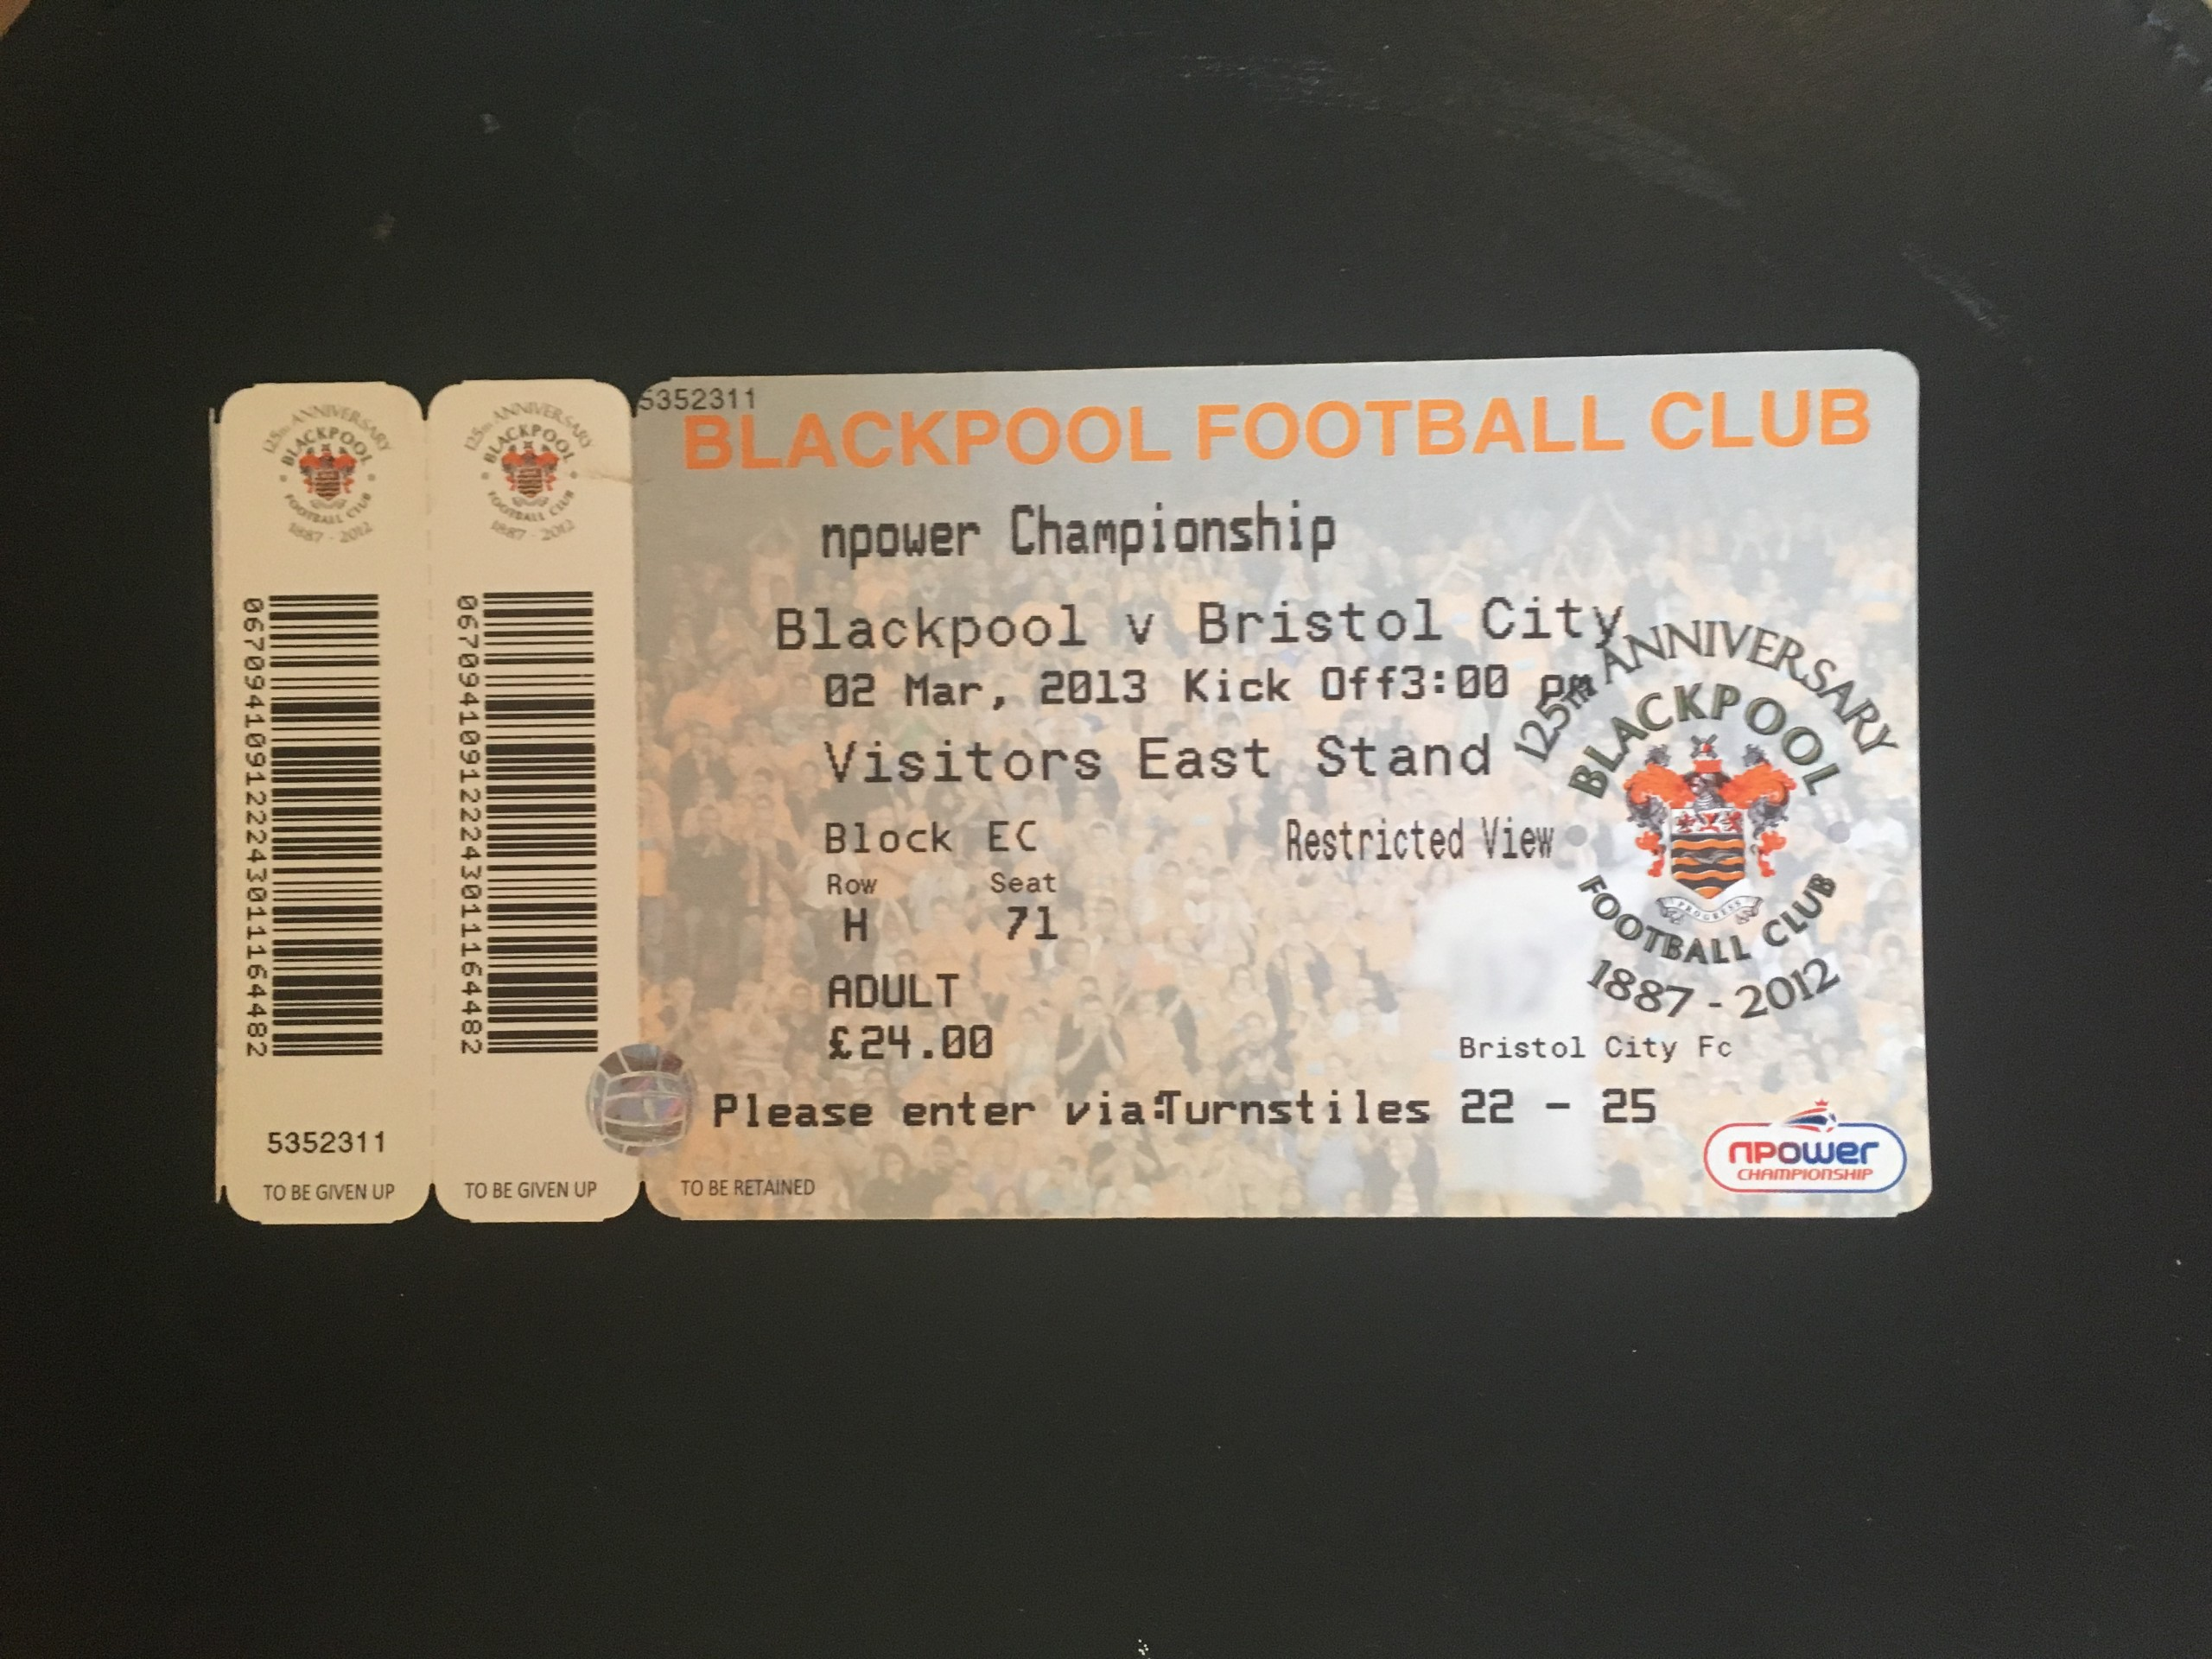 Blackpool v Bristol City 02-03-13 Ticket